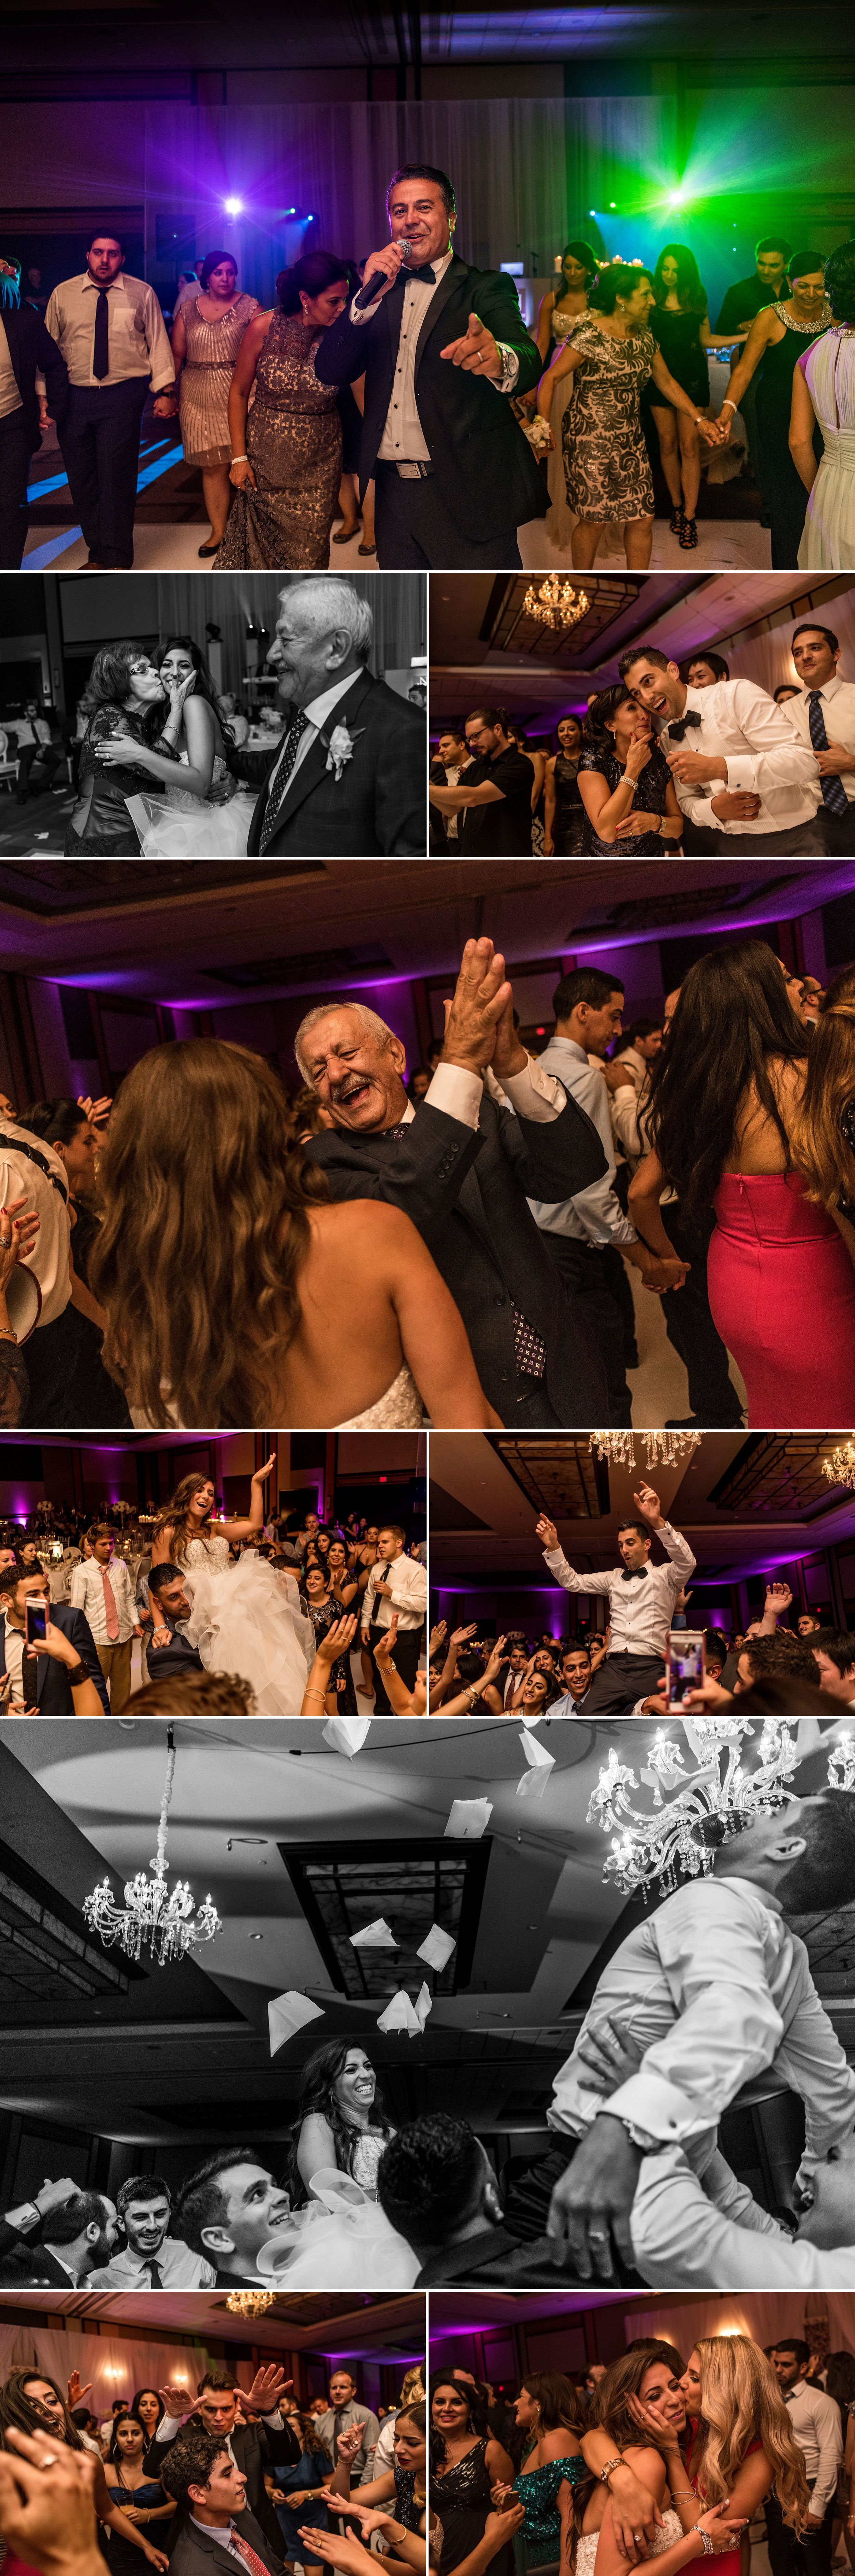 Dancing at the hilton lac lemy